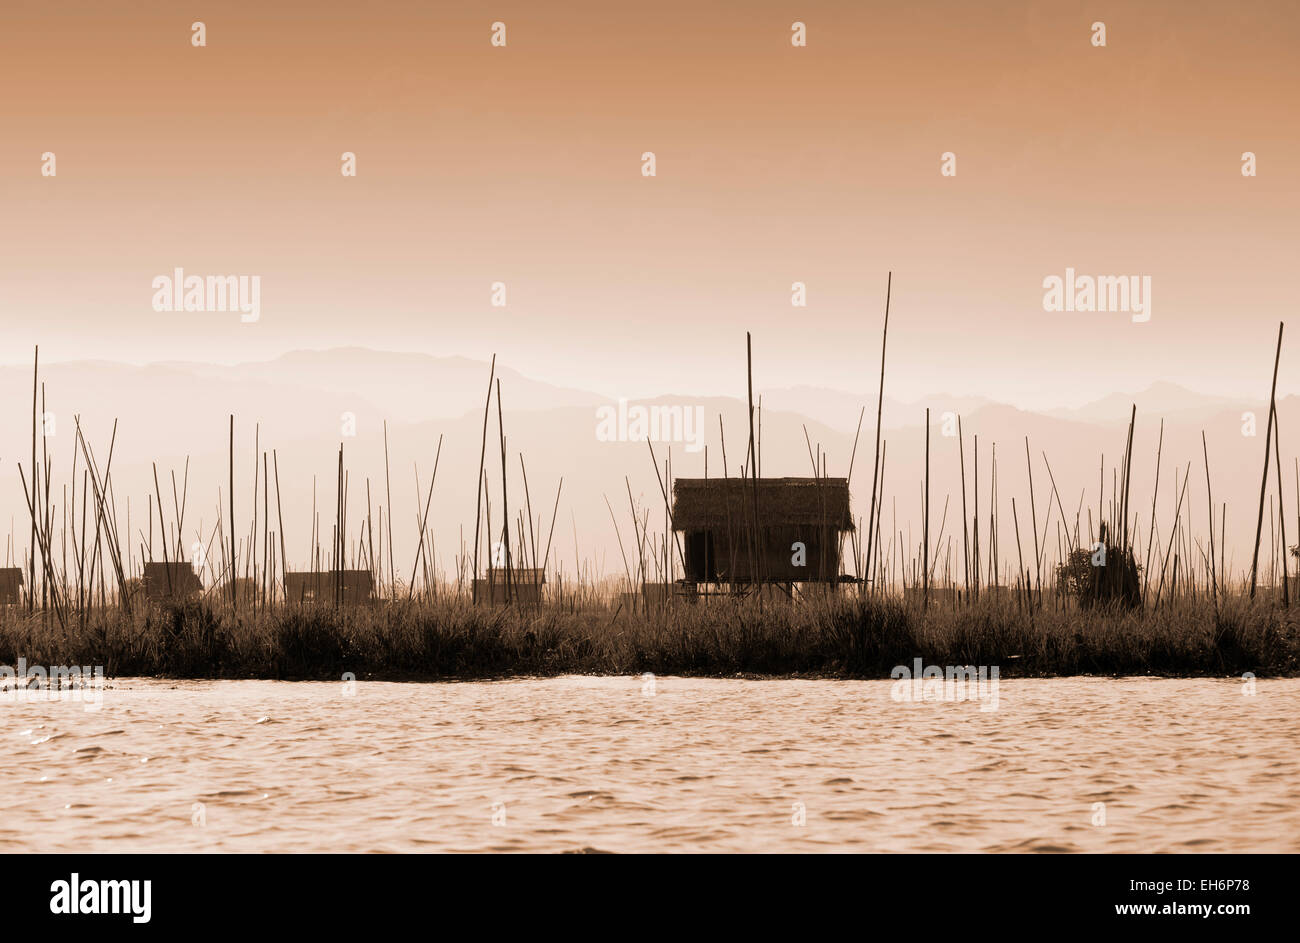 Landscape at dusk, Inle Lake, Myanmar ( Burma ), Asia Stock Photo